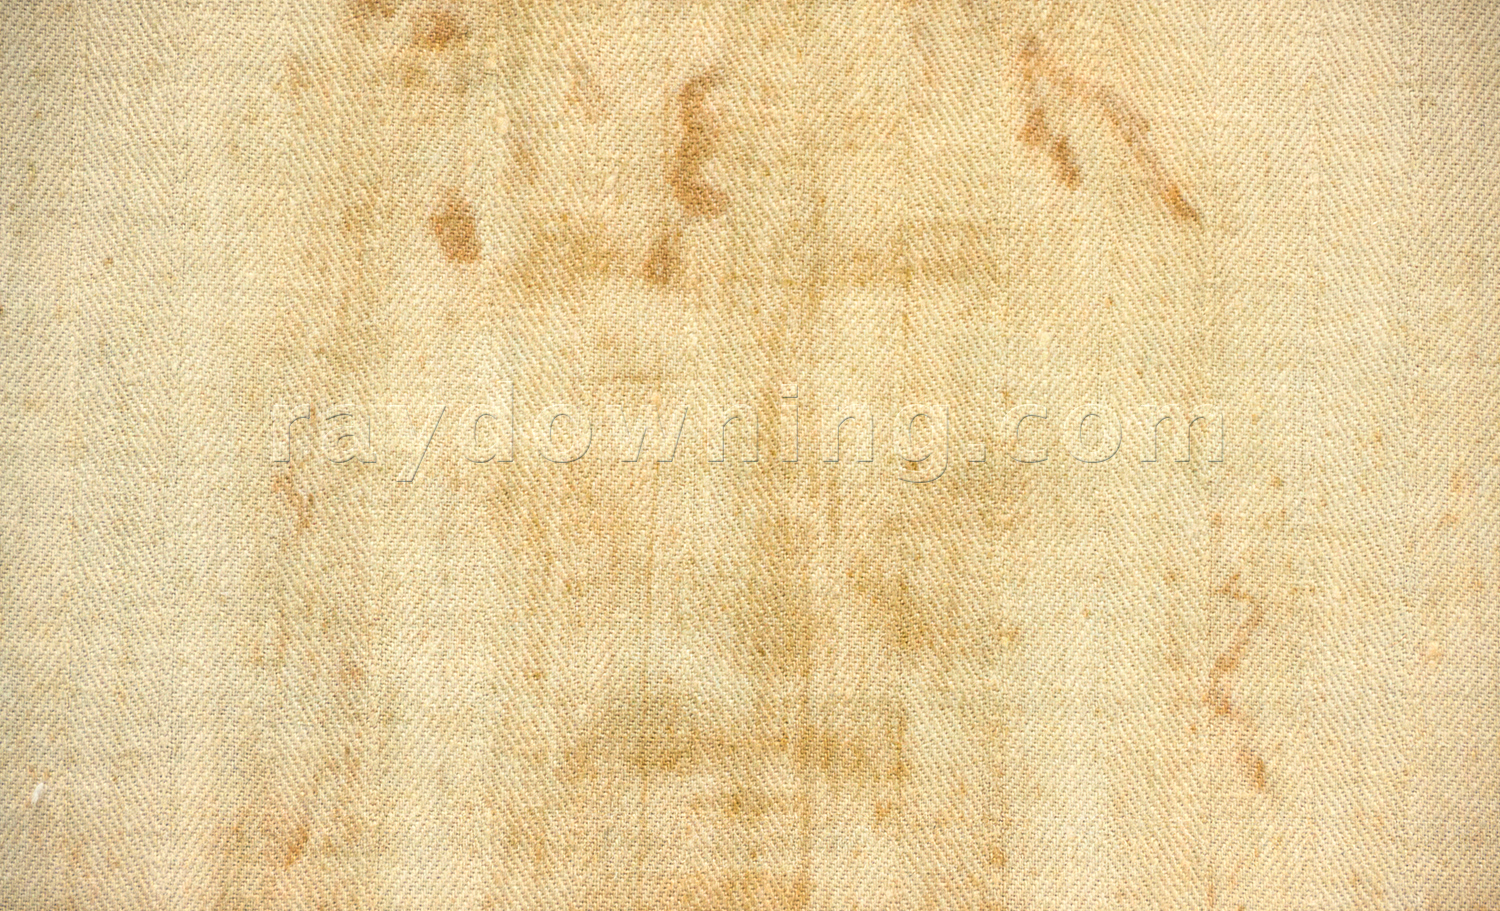 Shroud of Turin fabric face detail